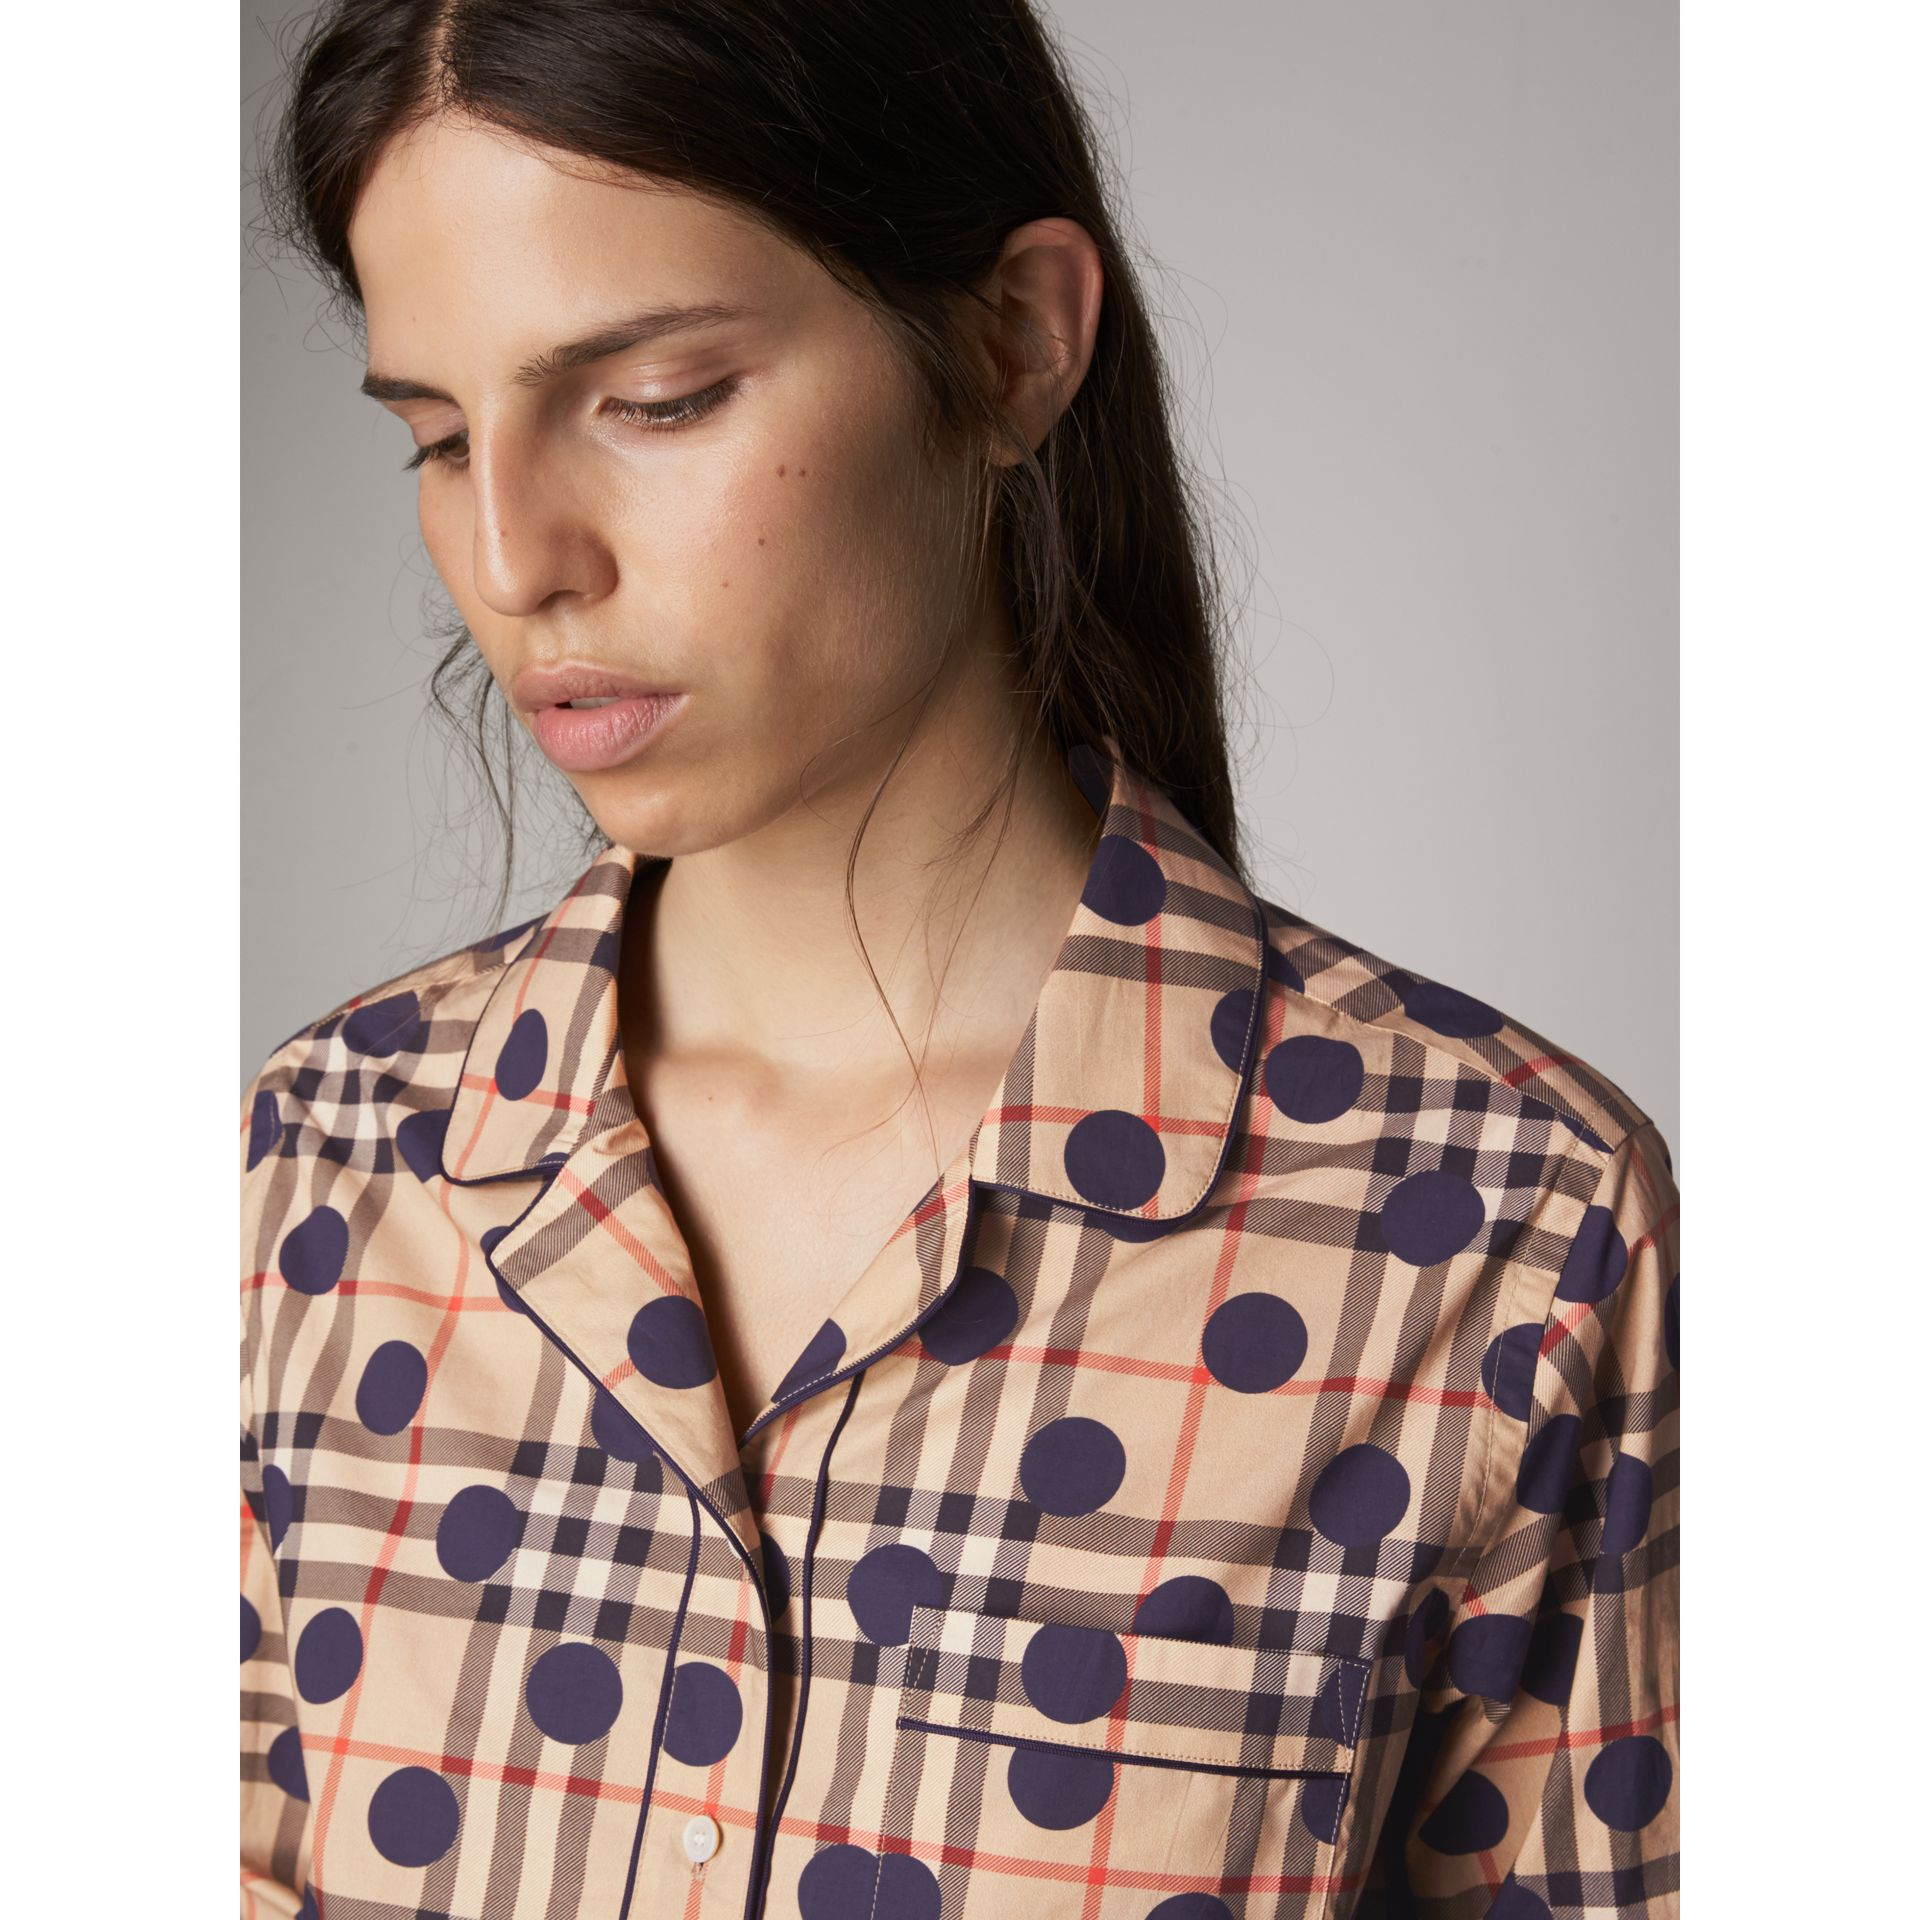 Polka-dot Check Cotton Pyjama-style Shirt in Navy - Women | Burberry - gallery image 1